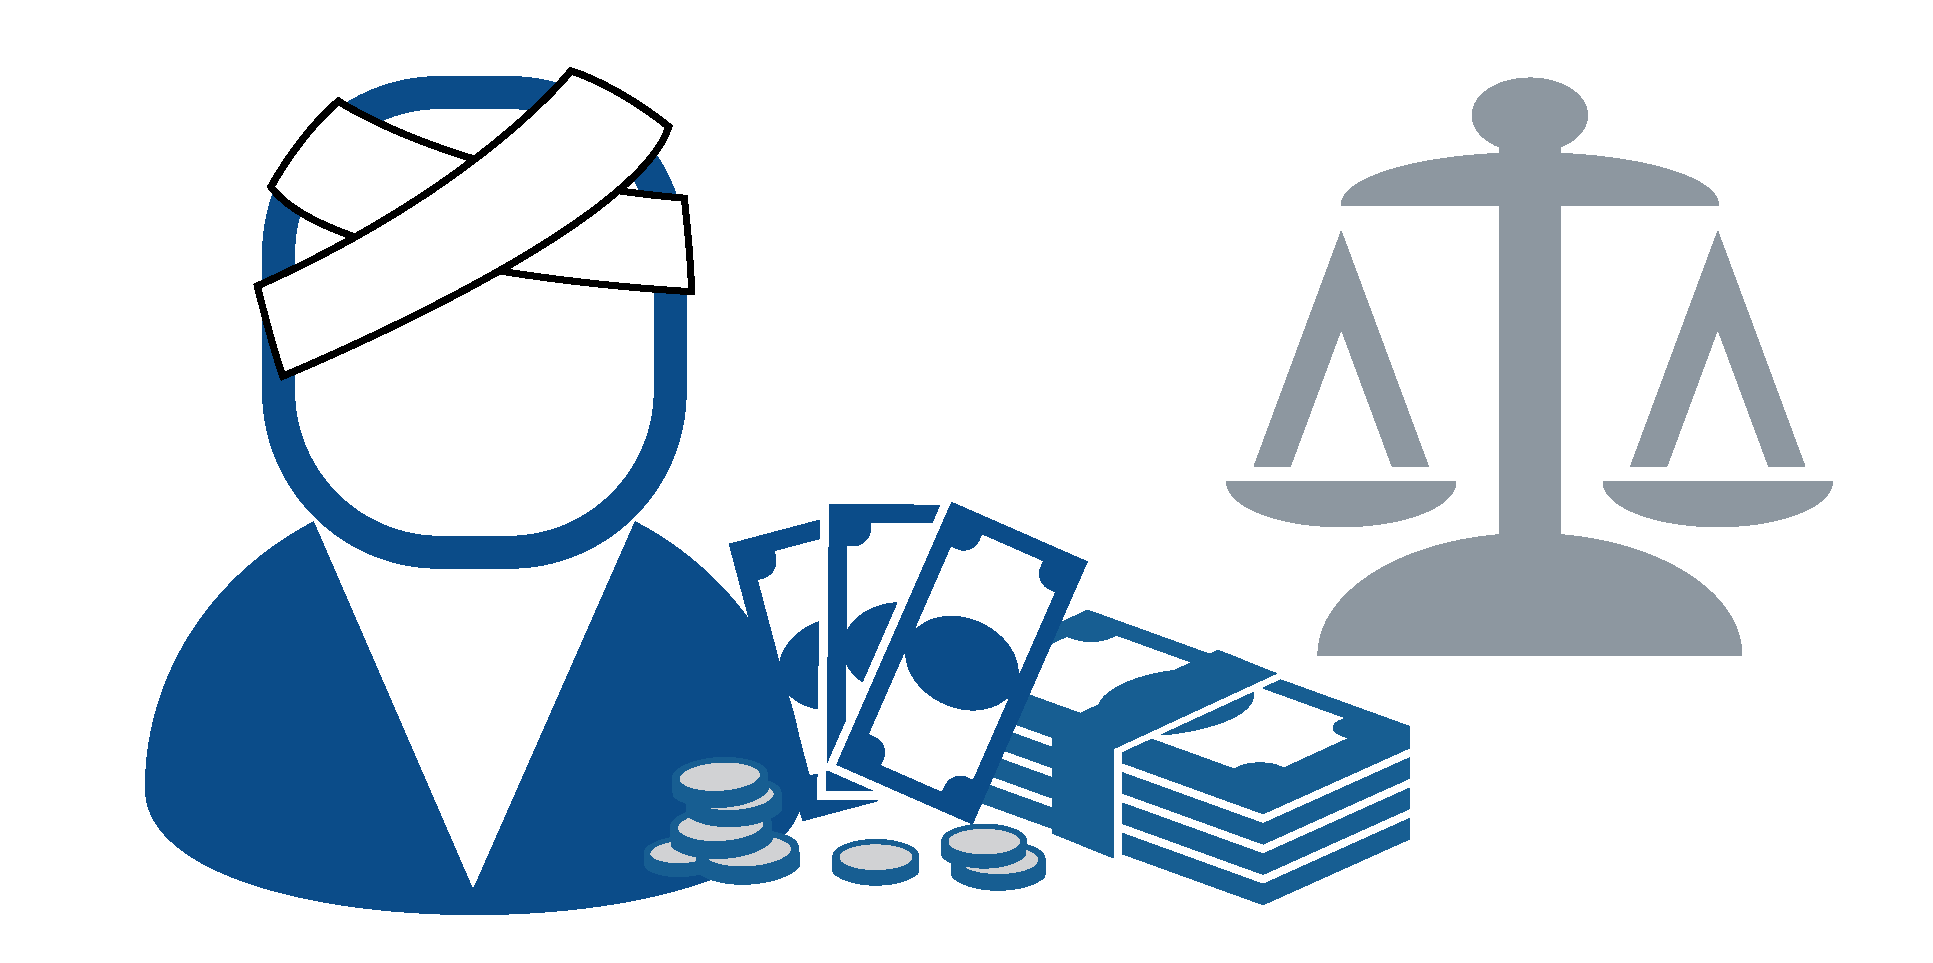 Maritime claims the young. Injury clipart job